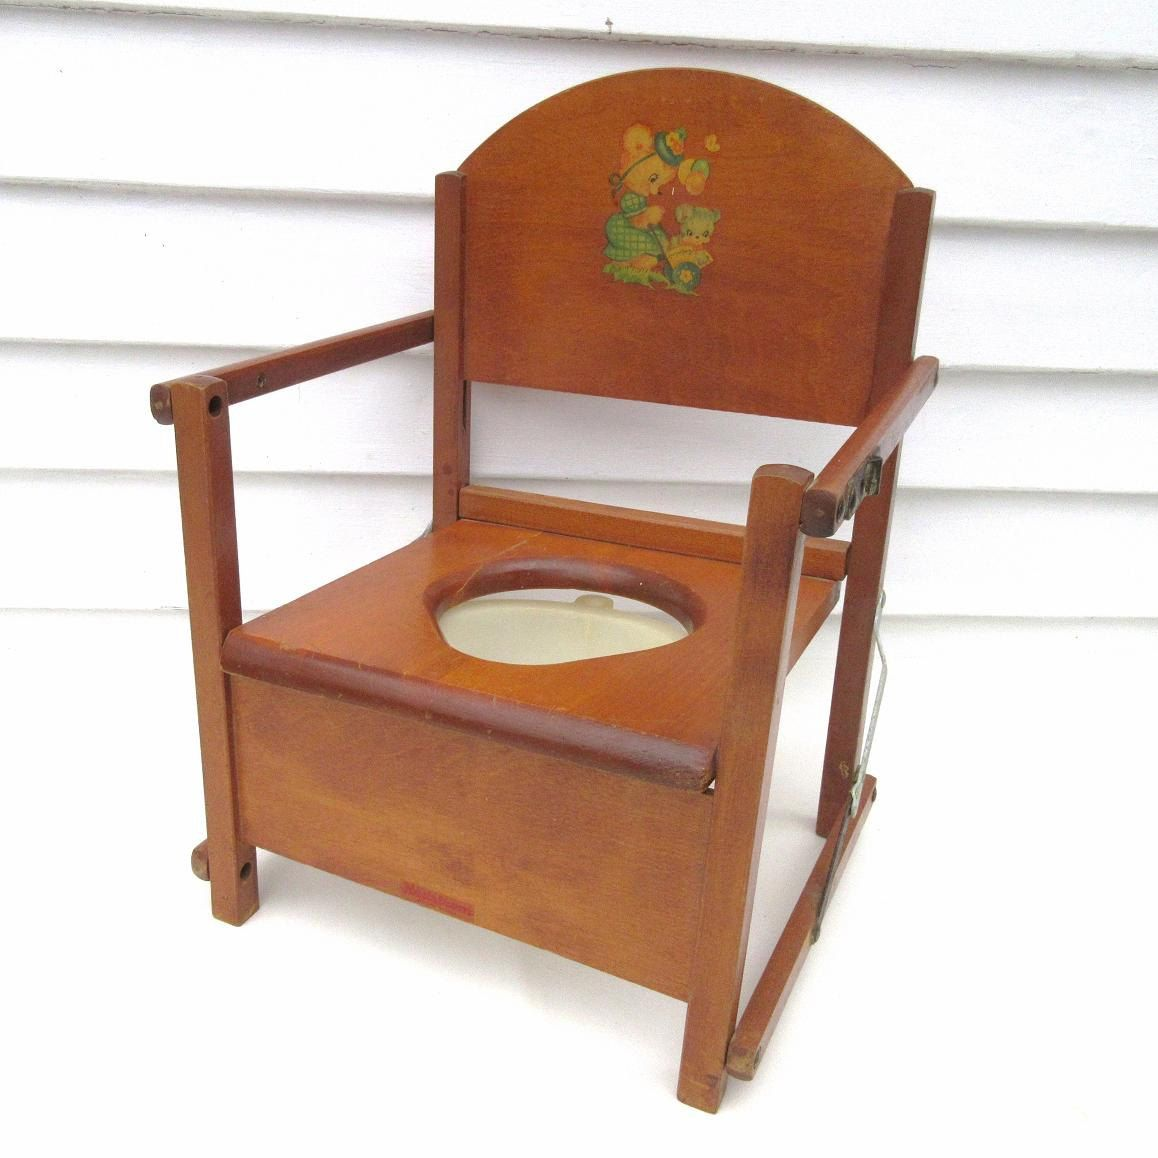 Vintage Potty Chair / Childs Folding Chair / Wood Potty Chair ...